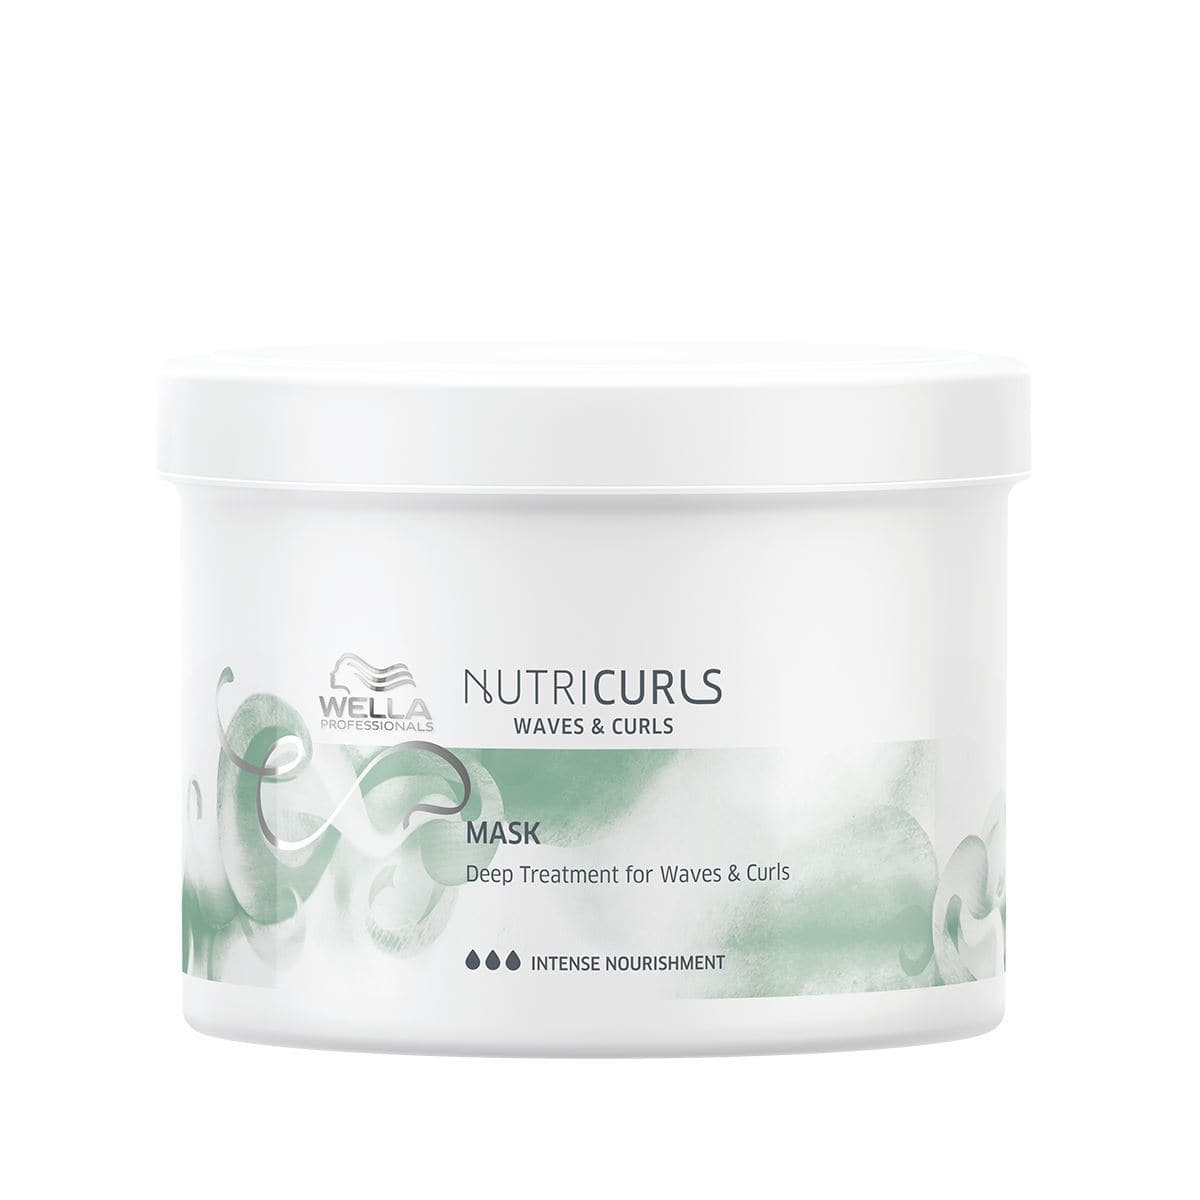 Deep Treatment for Waves & Curls | NUTRICURLS - SH Salons